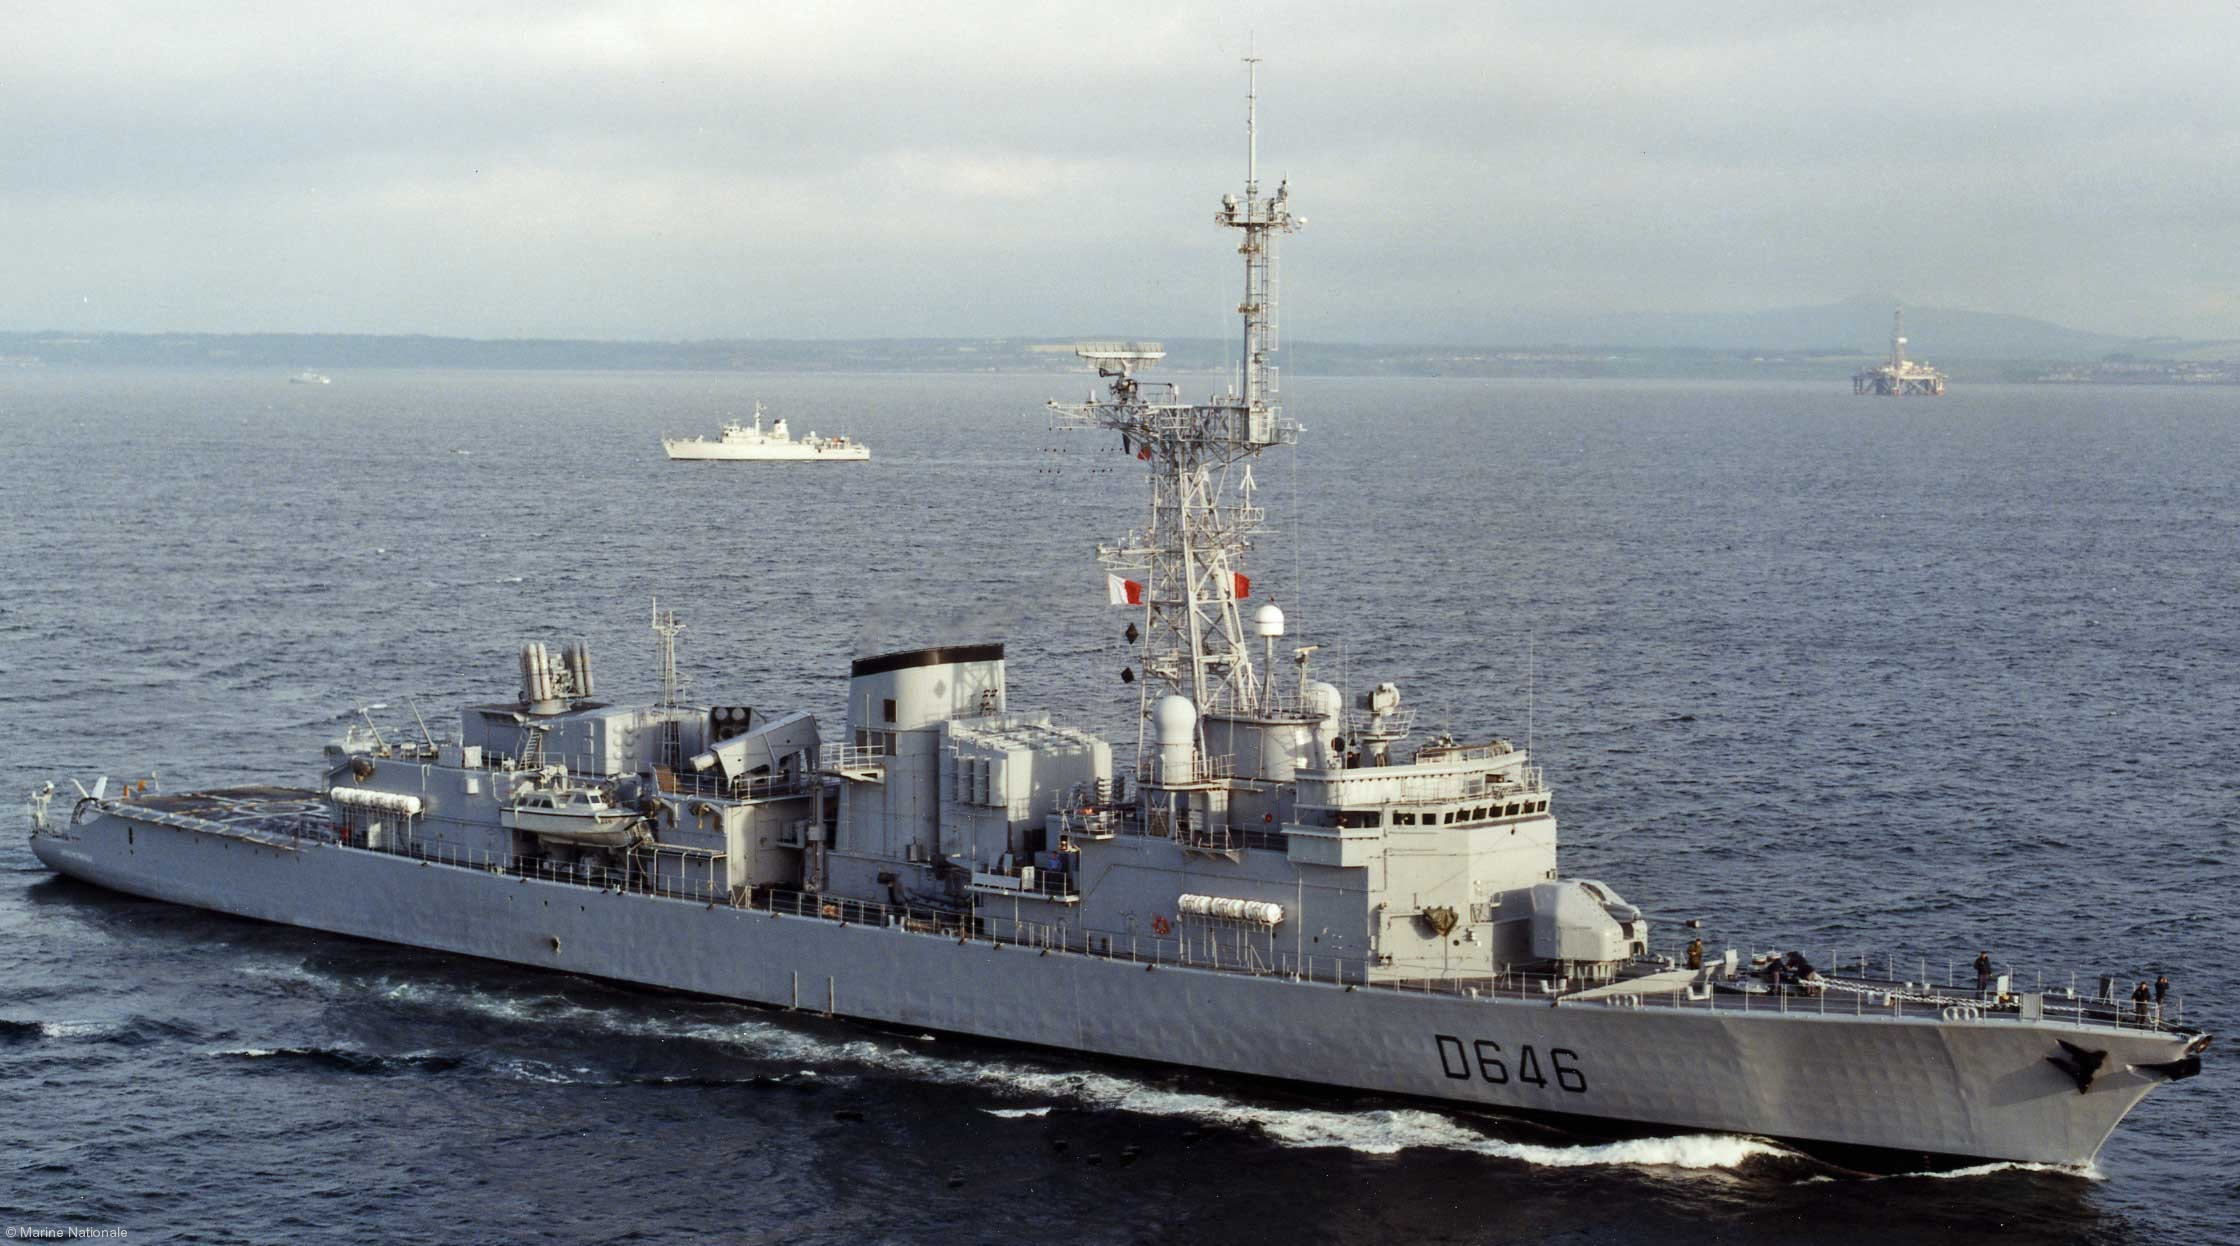 FS Latouche Treville D-646 Frigate F70AS French Navy Marine Nationale